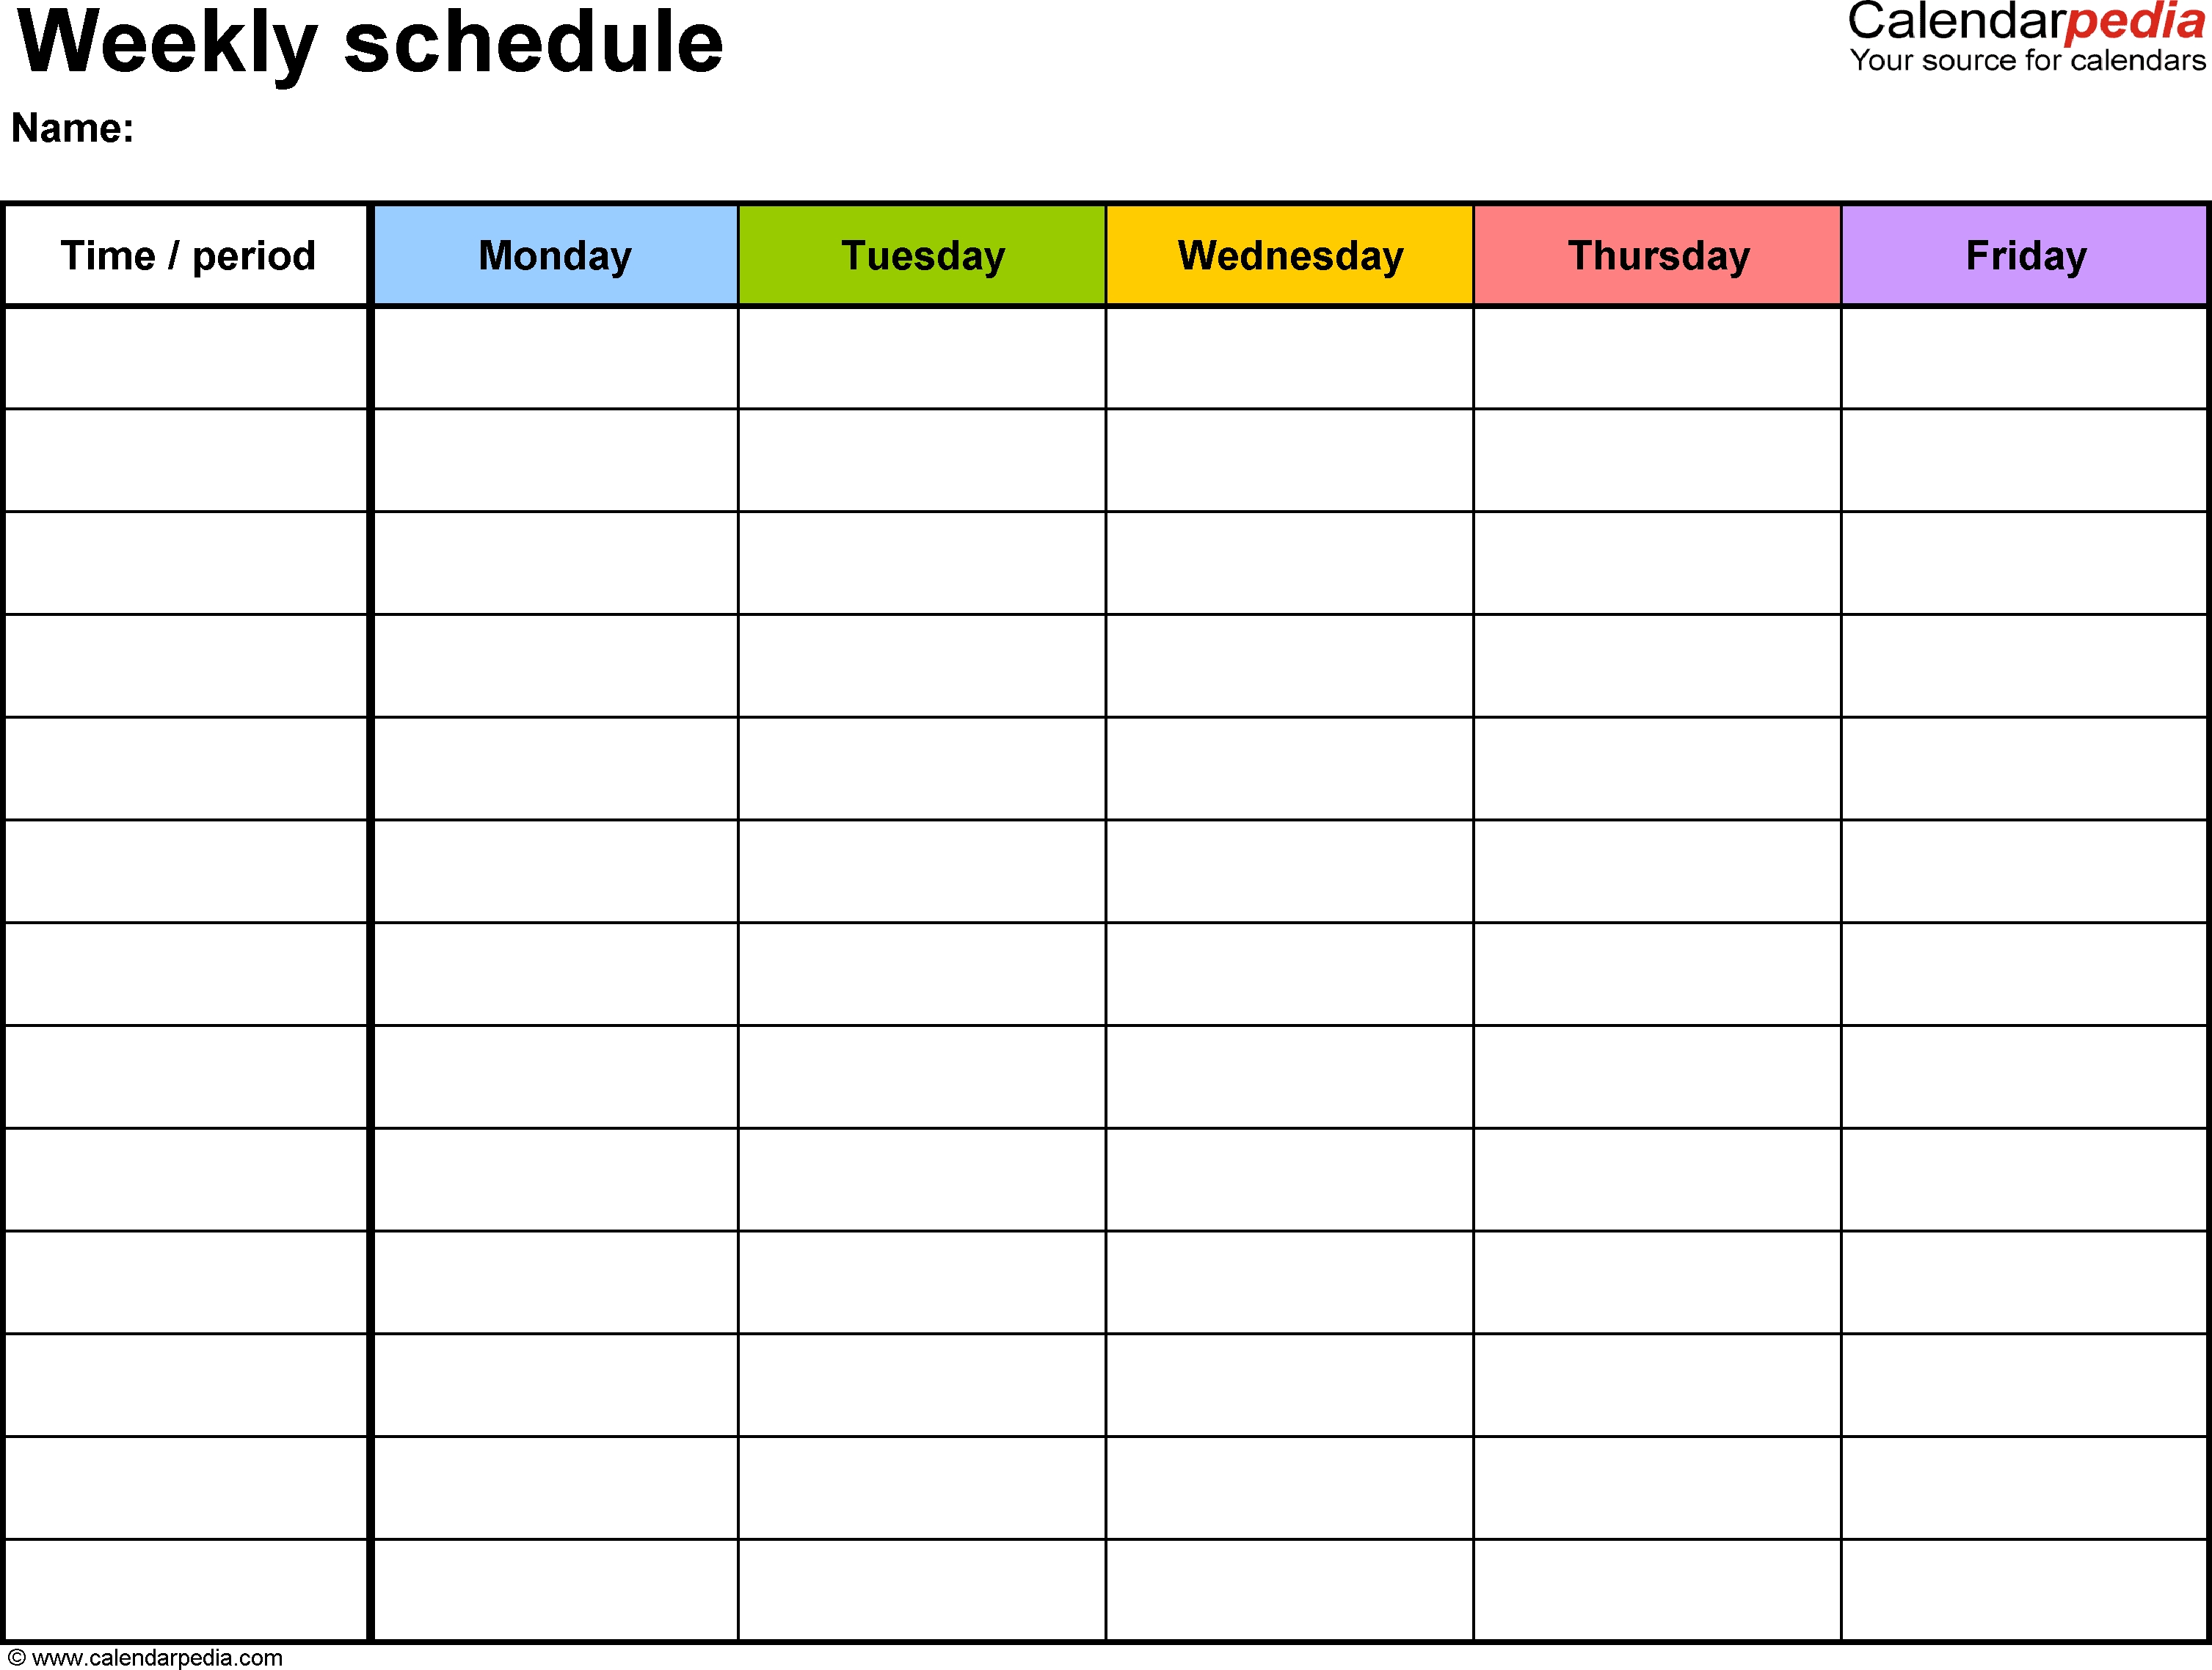 Free Weekly Schedule Templates For Pdf - 18 Templates with regard to Free Printable Weekly Schedule Template